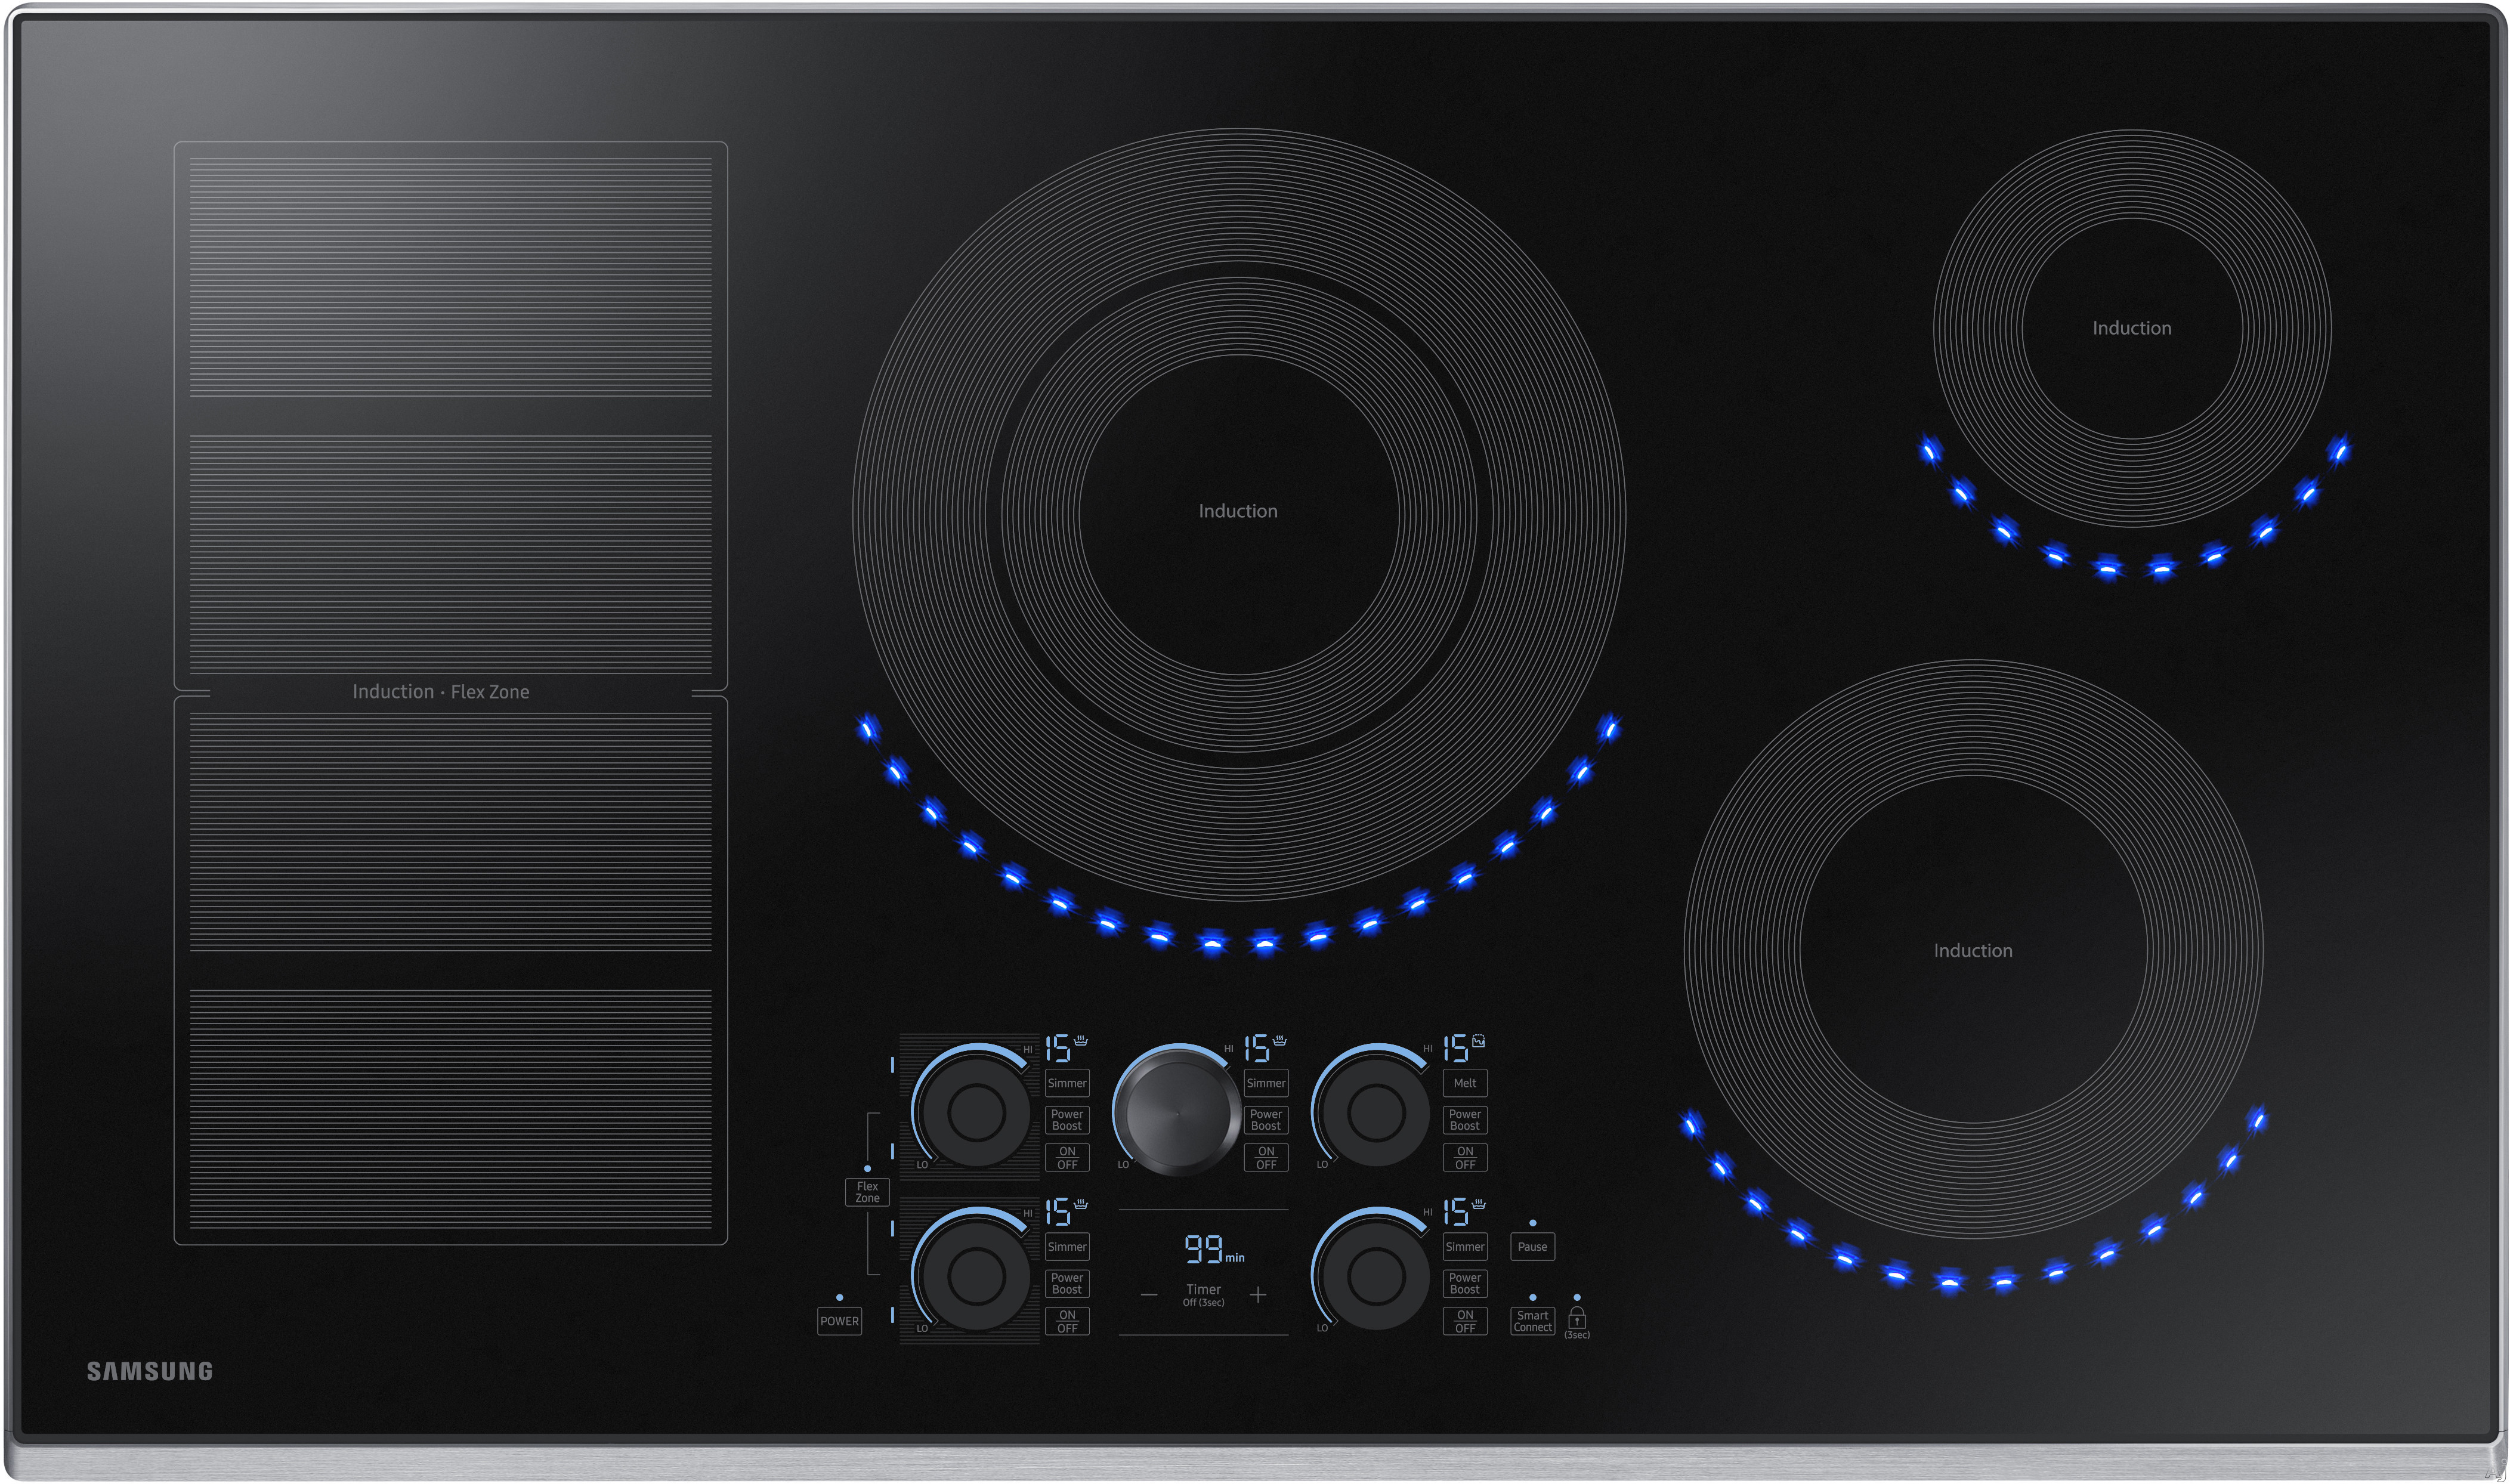 Samsung NZ36K7880US 36 Inch Induction Cooktop with Flex Zone, 15 Heat Settings, Power Boost, Melt Mode, Simmer Control, Virtual Flame Surface Lights, Timer, Control Lock and Wi-Fi Connectivity: Stainl